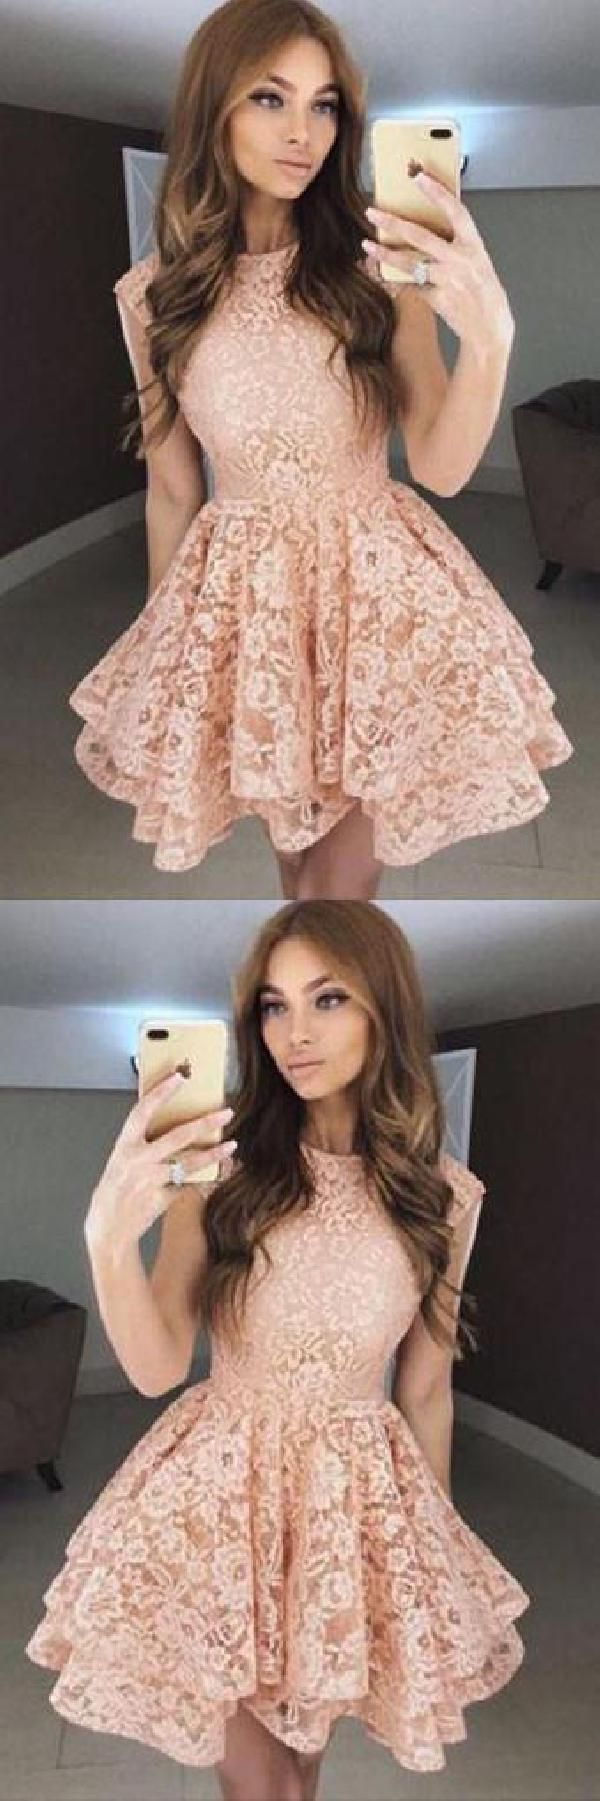 Homecoming dresses short lace prom dress cheap homecoming dresses